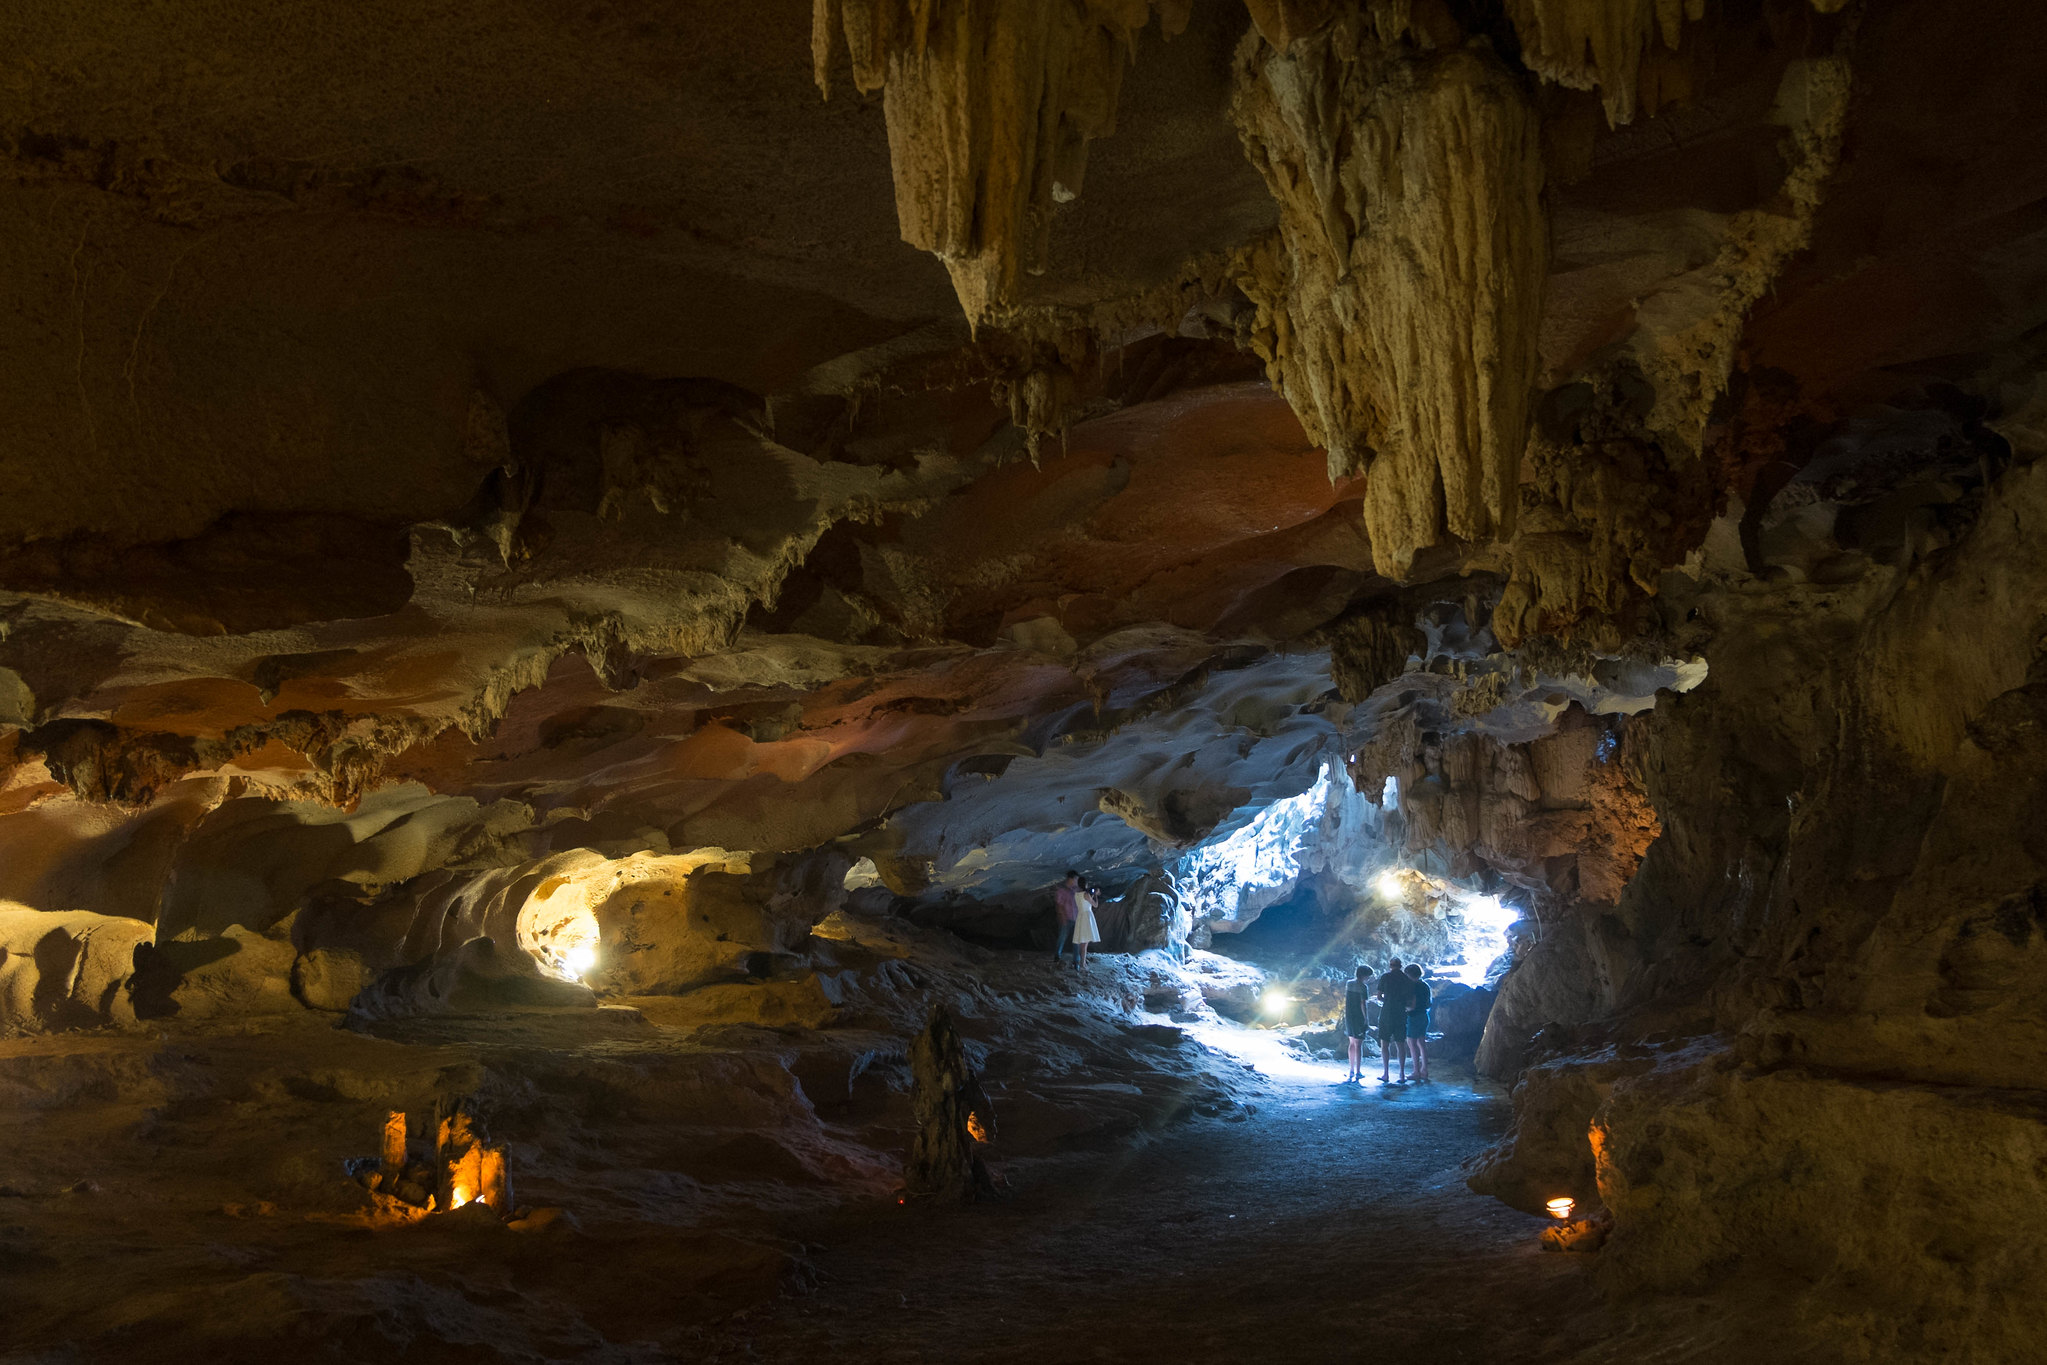 Thien Canh Son Cave - Caves in Halong Bay worth visiting 2020